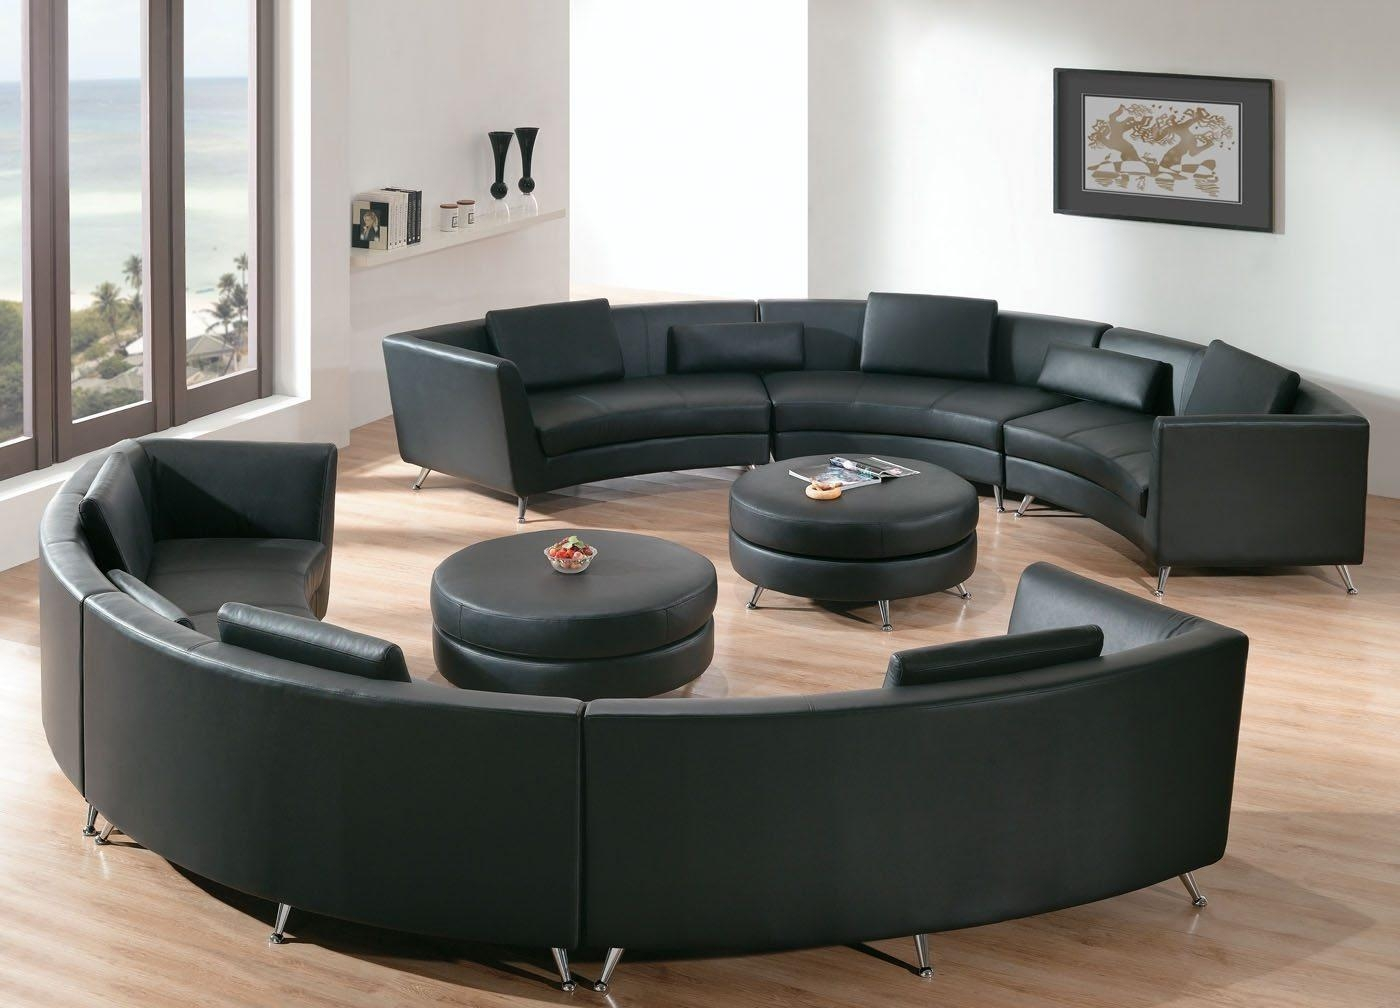 Semi Circular Sectional Sofa Has One Of The Best Kind Of Other Is For Semi Circular Sectional Sofas (Image 14 of 20)